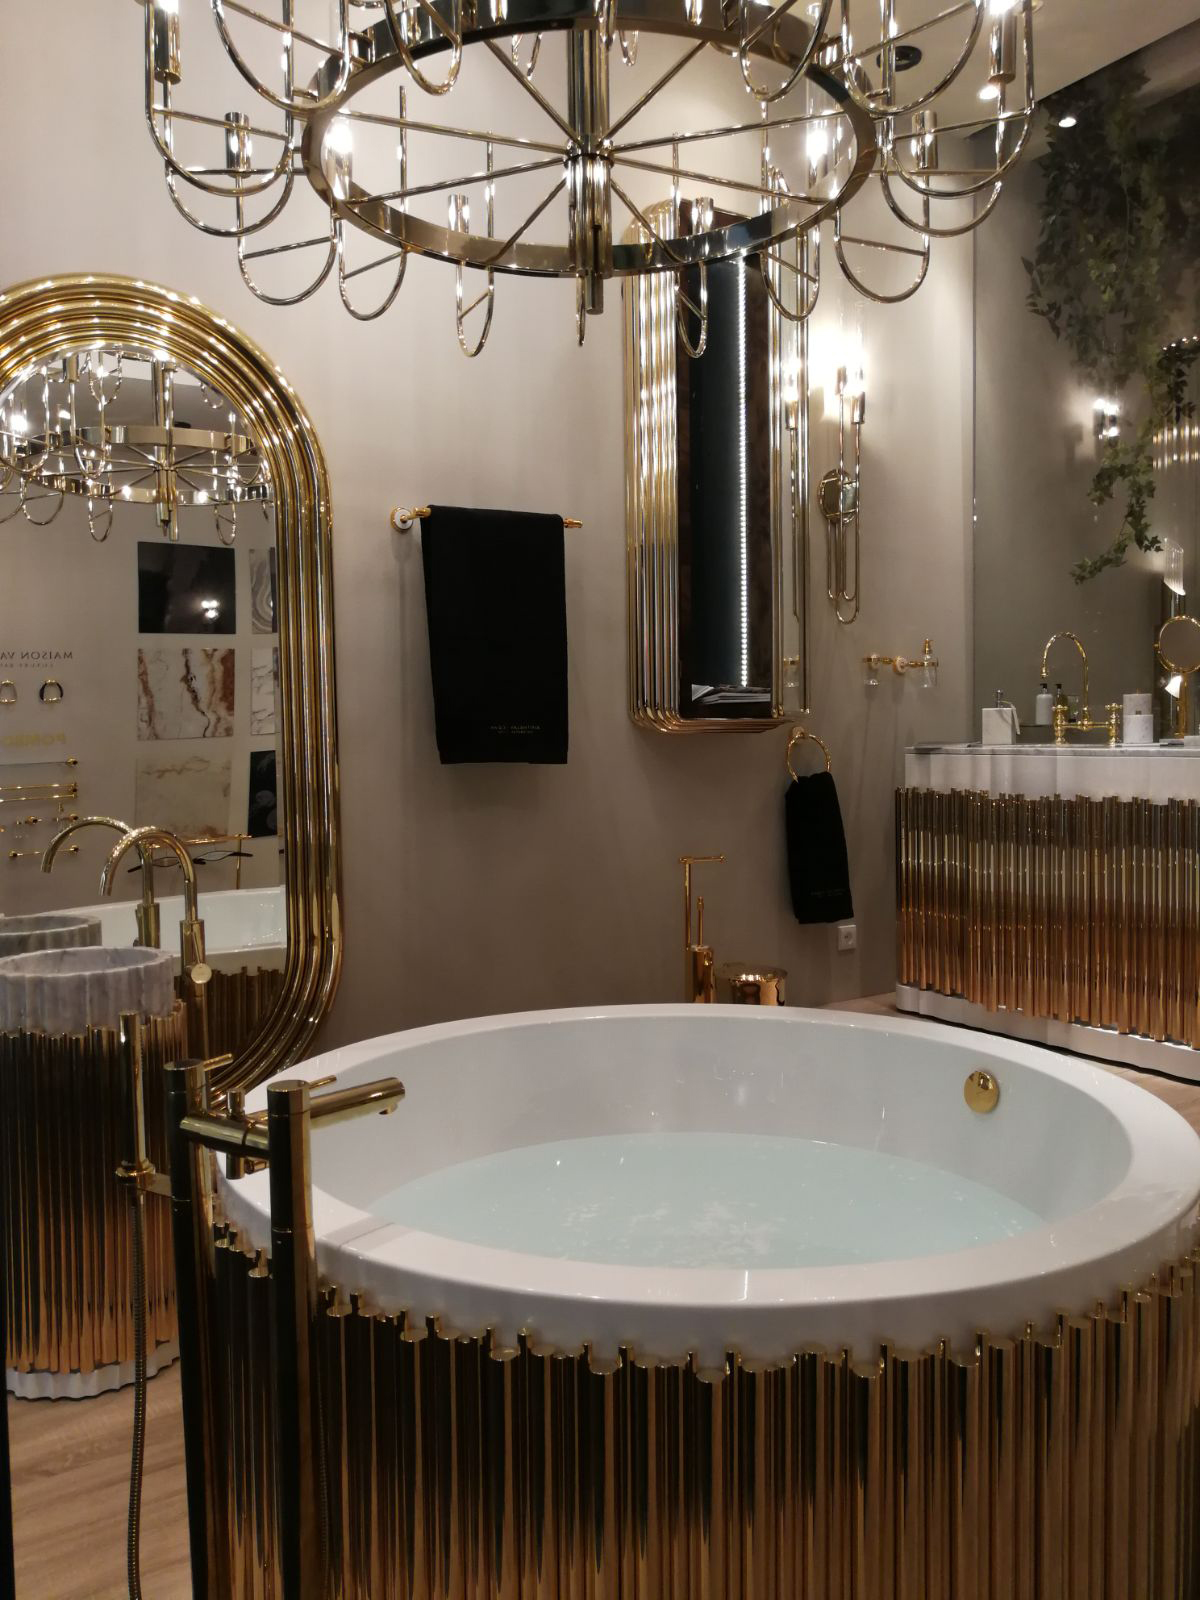 The Magic Of Design: Highlights Of Isaloni 2018  The Magic Of Design: Highlights Of Isaloni 2018 TA 2